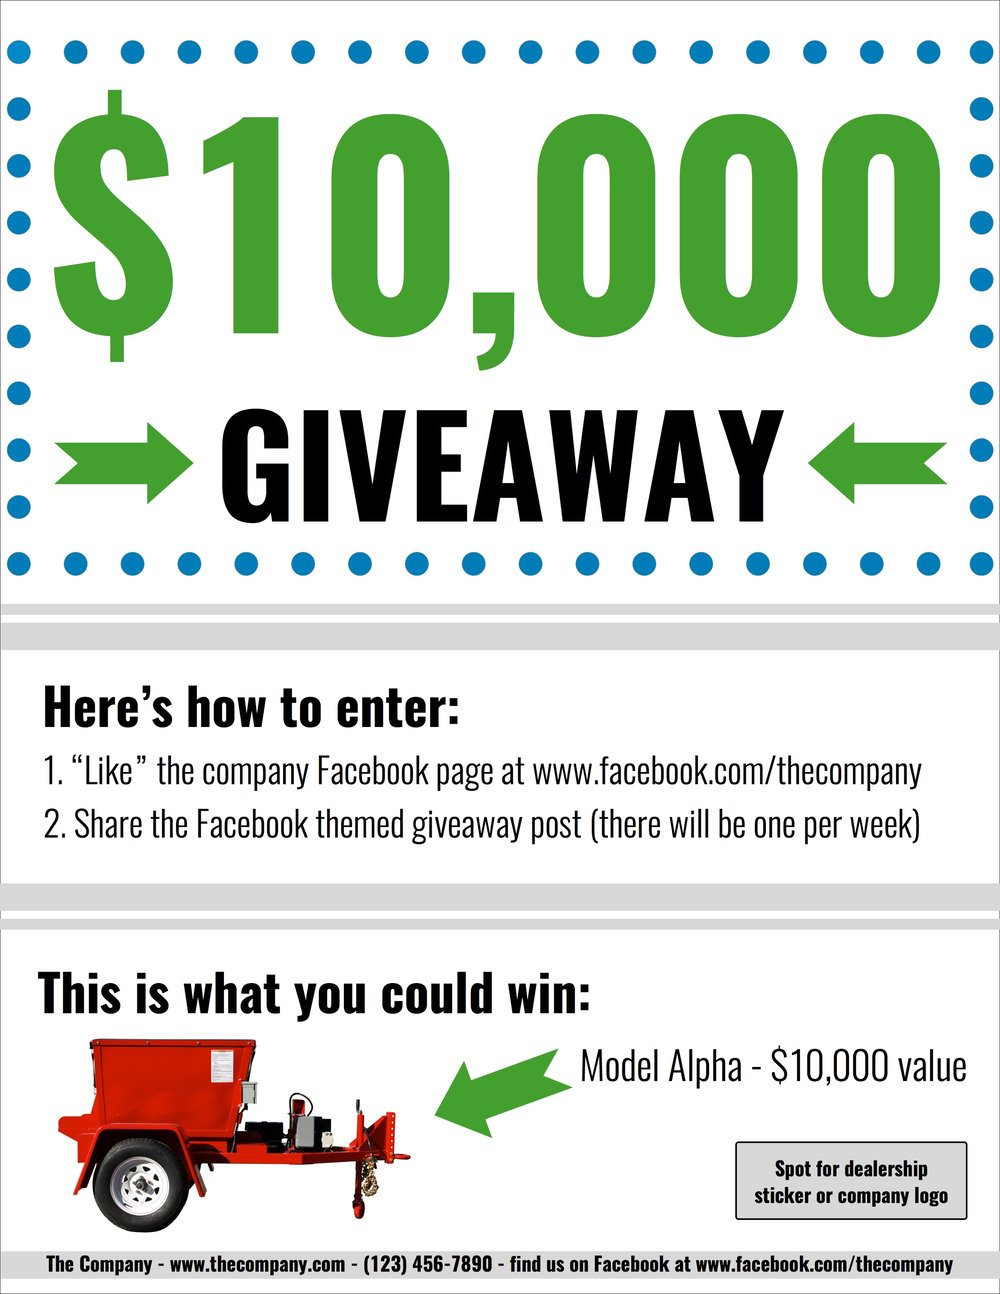 Giveaway handout for dealers to promote the social media facebook account